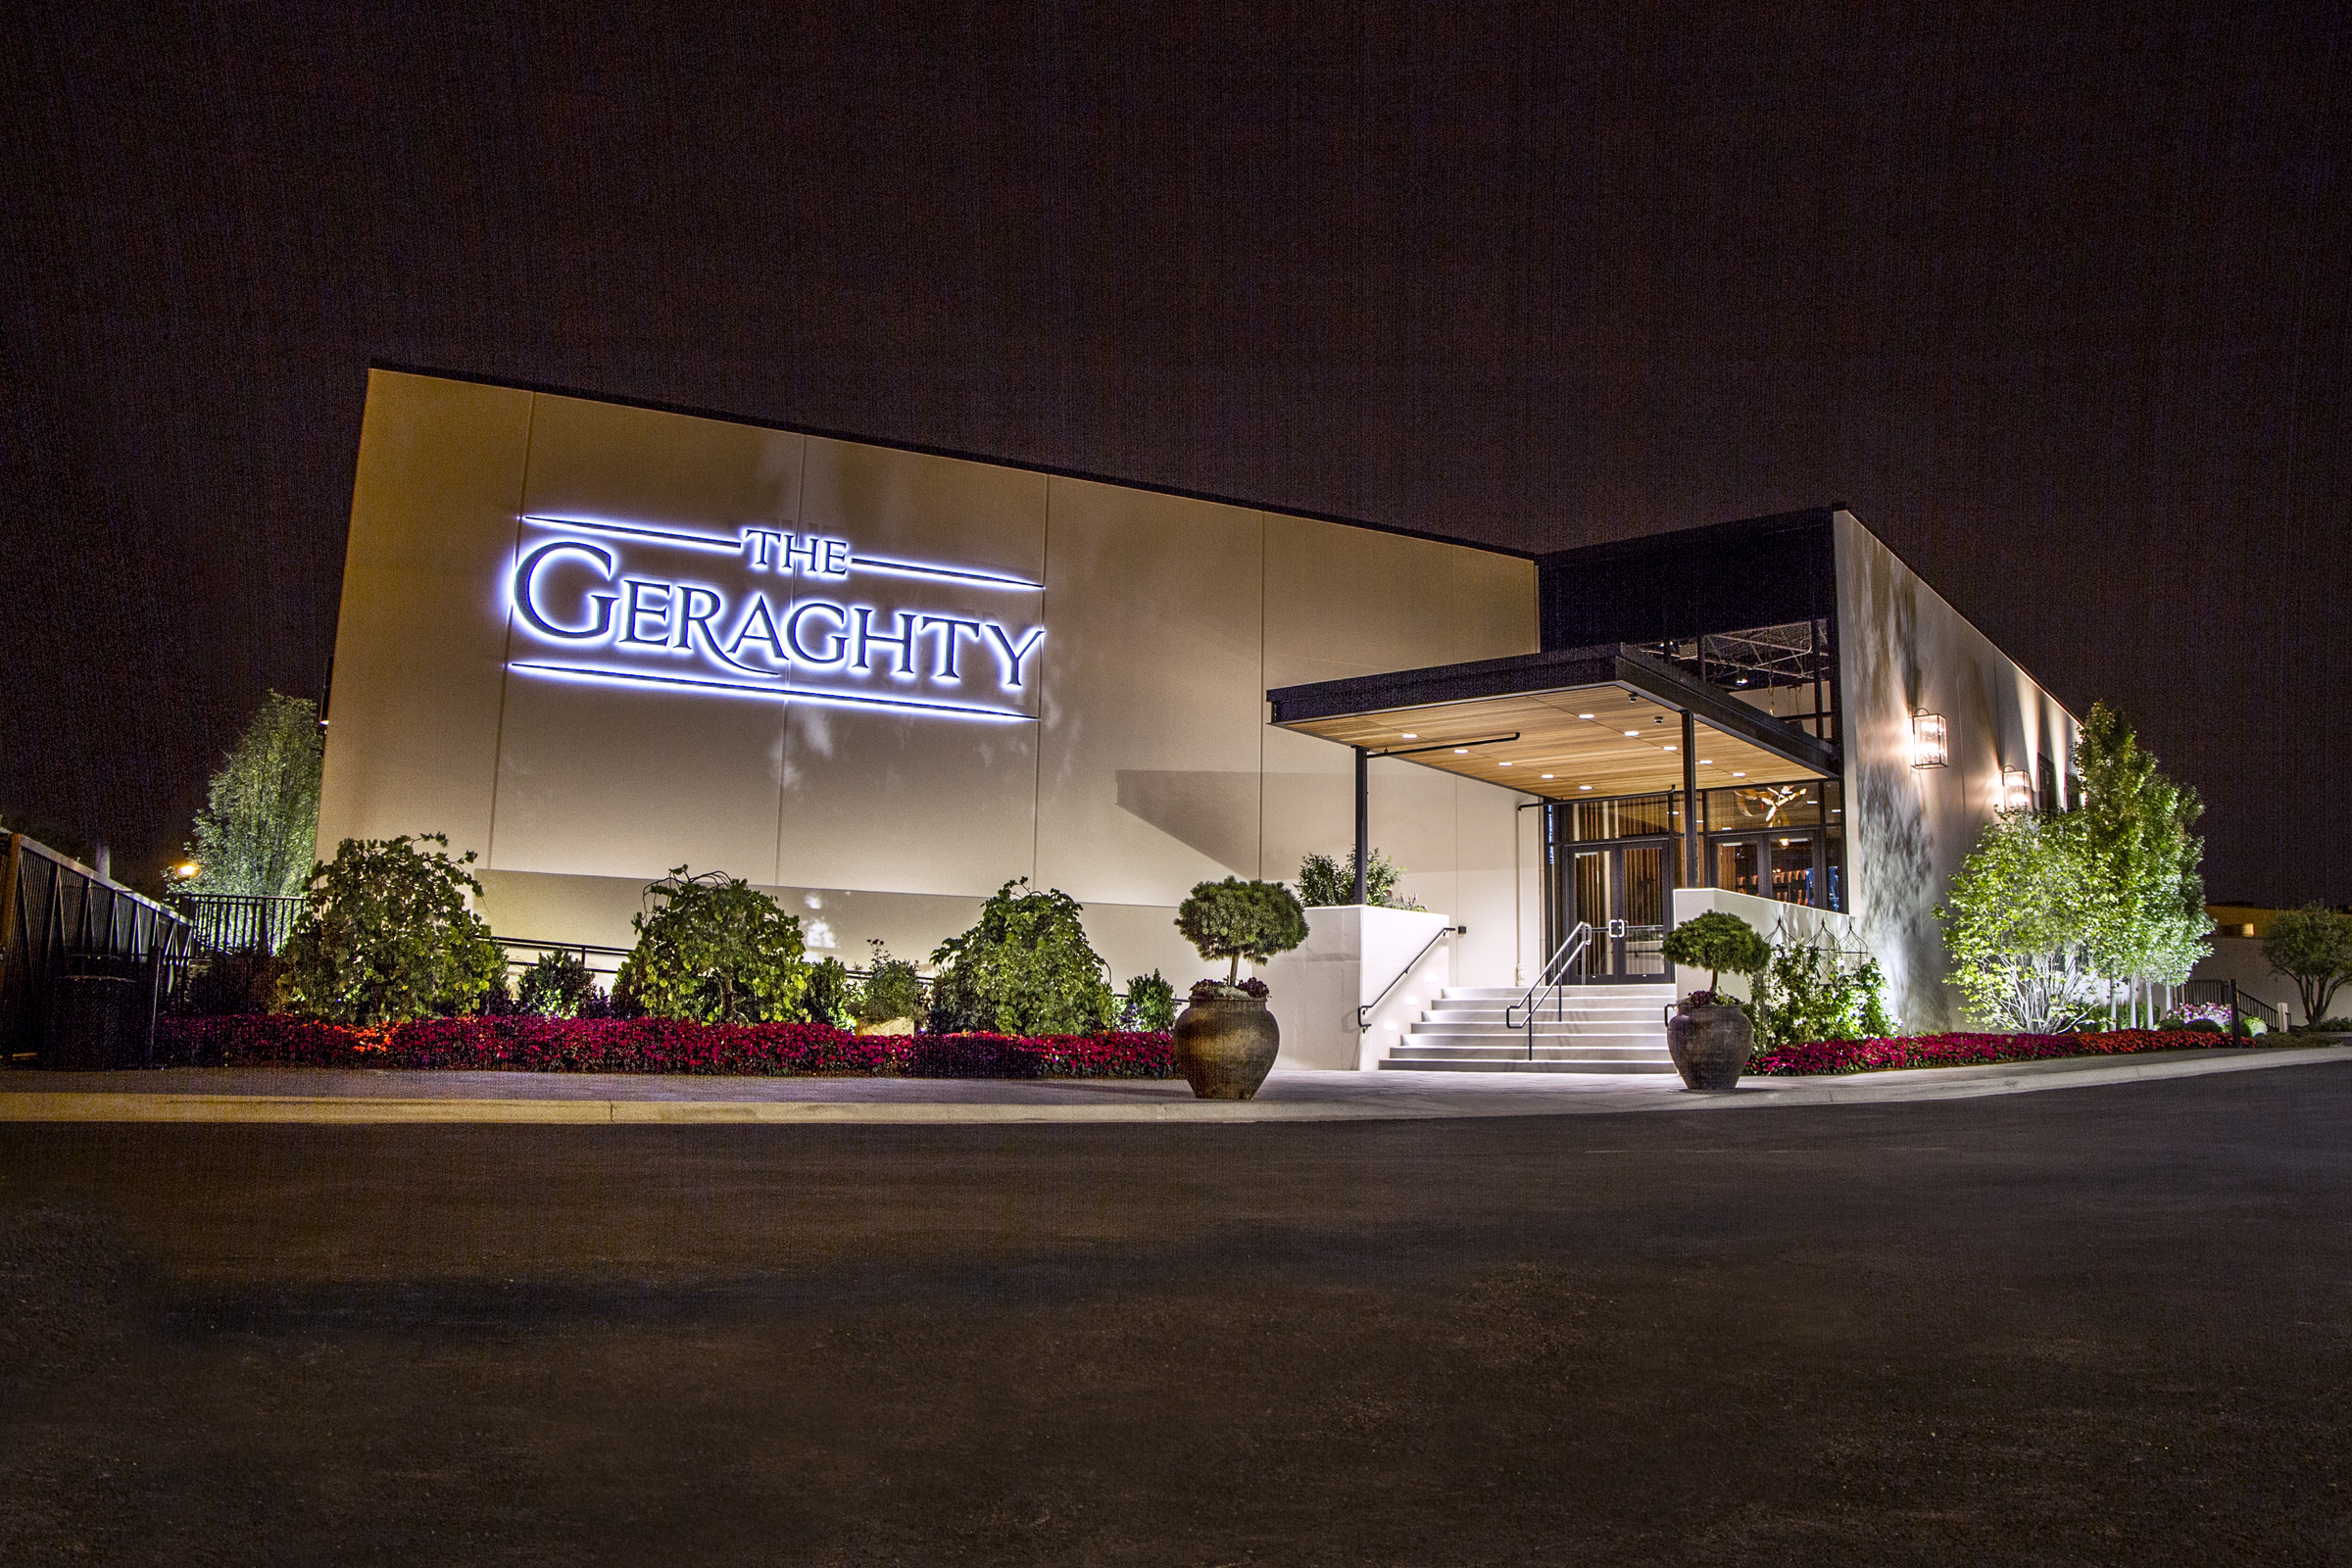 The Geraghty, located on Chicago's lower west side, will host the 2019 Beauty Changes Lives Experience and Legacy